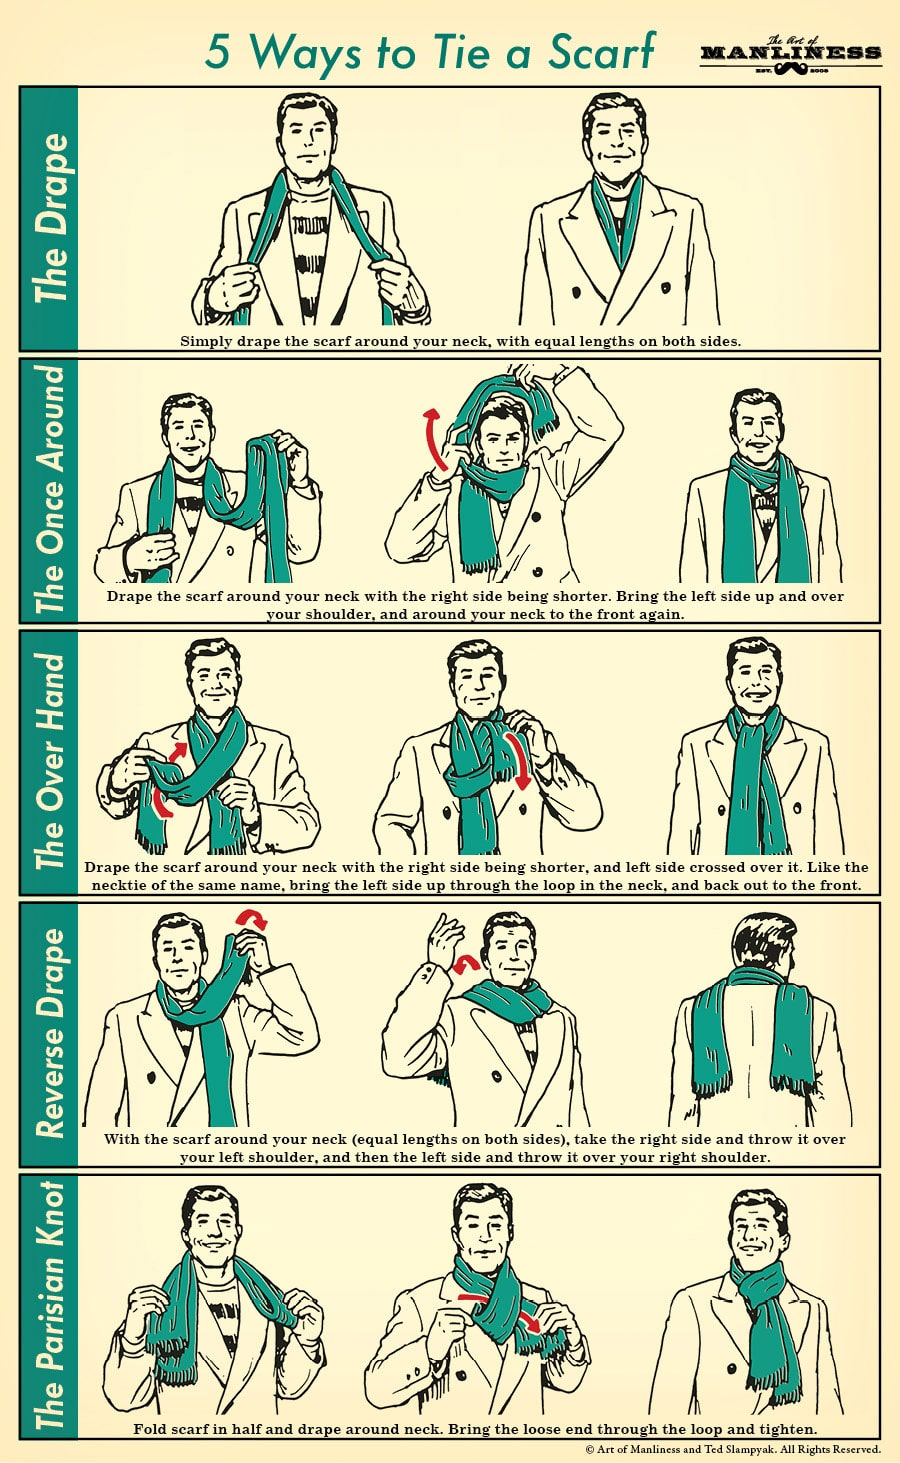 How to tie a mens scarf 5 masculine styles the art of manliness 5 ways to tie a scarf your 60 second visual guide ccuart Choice Image